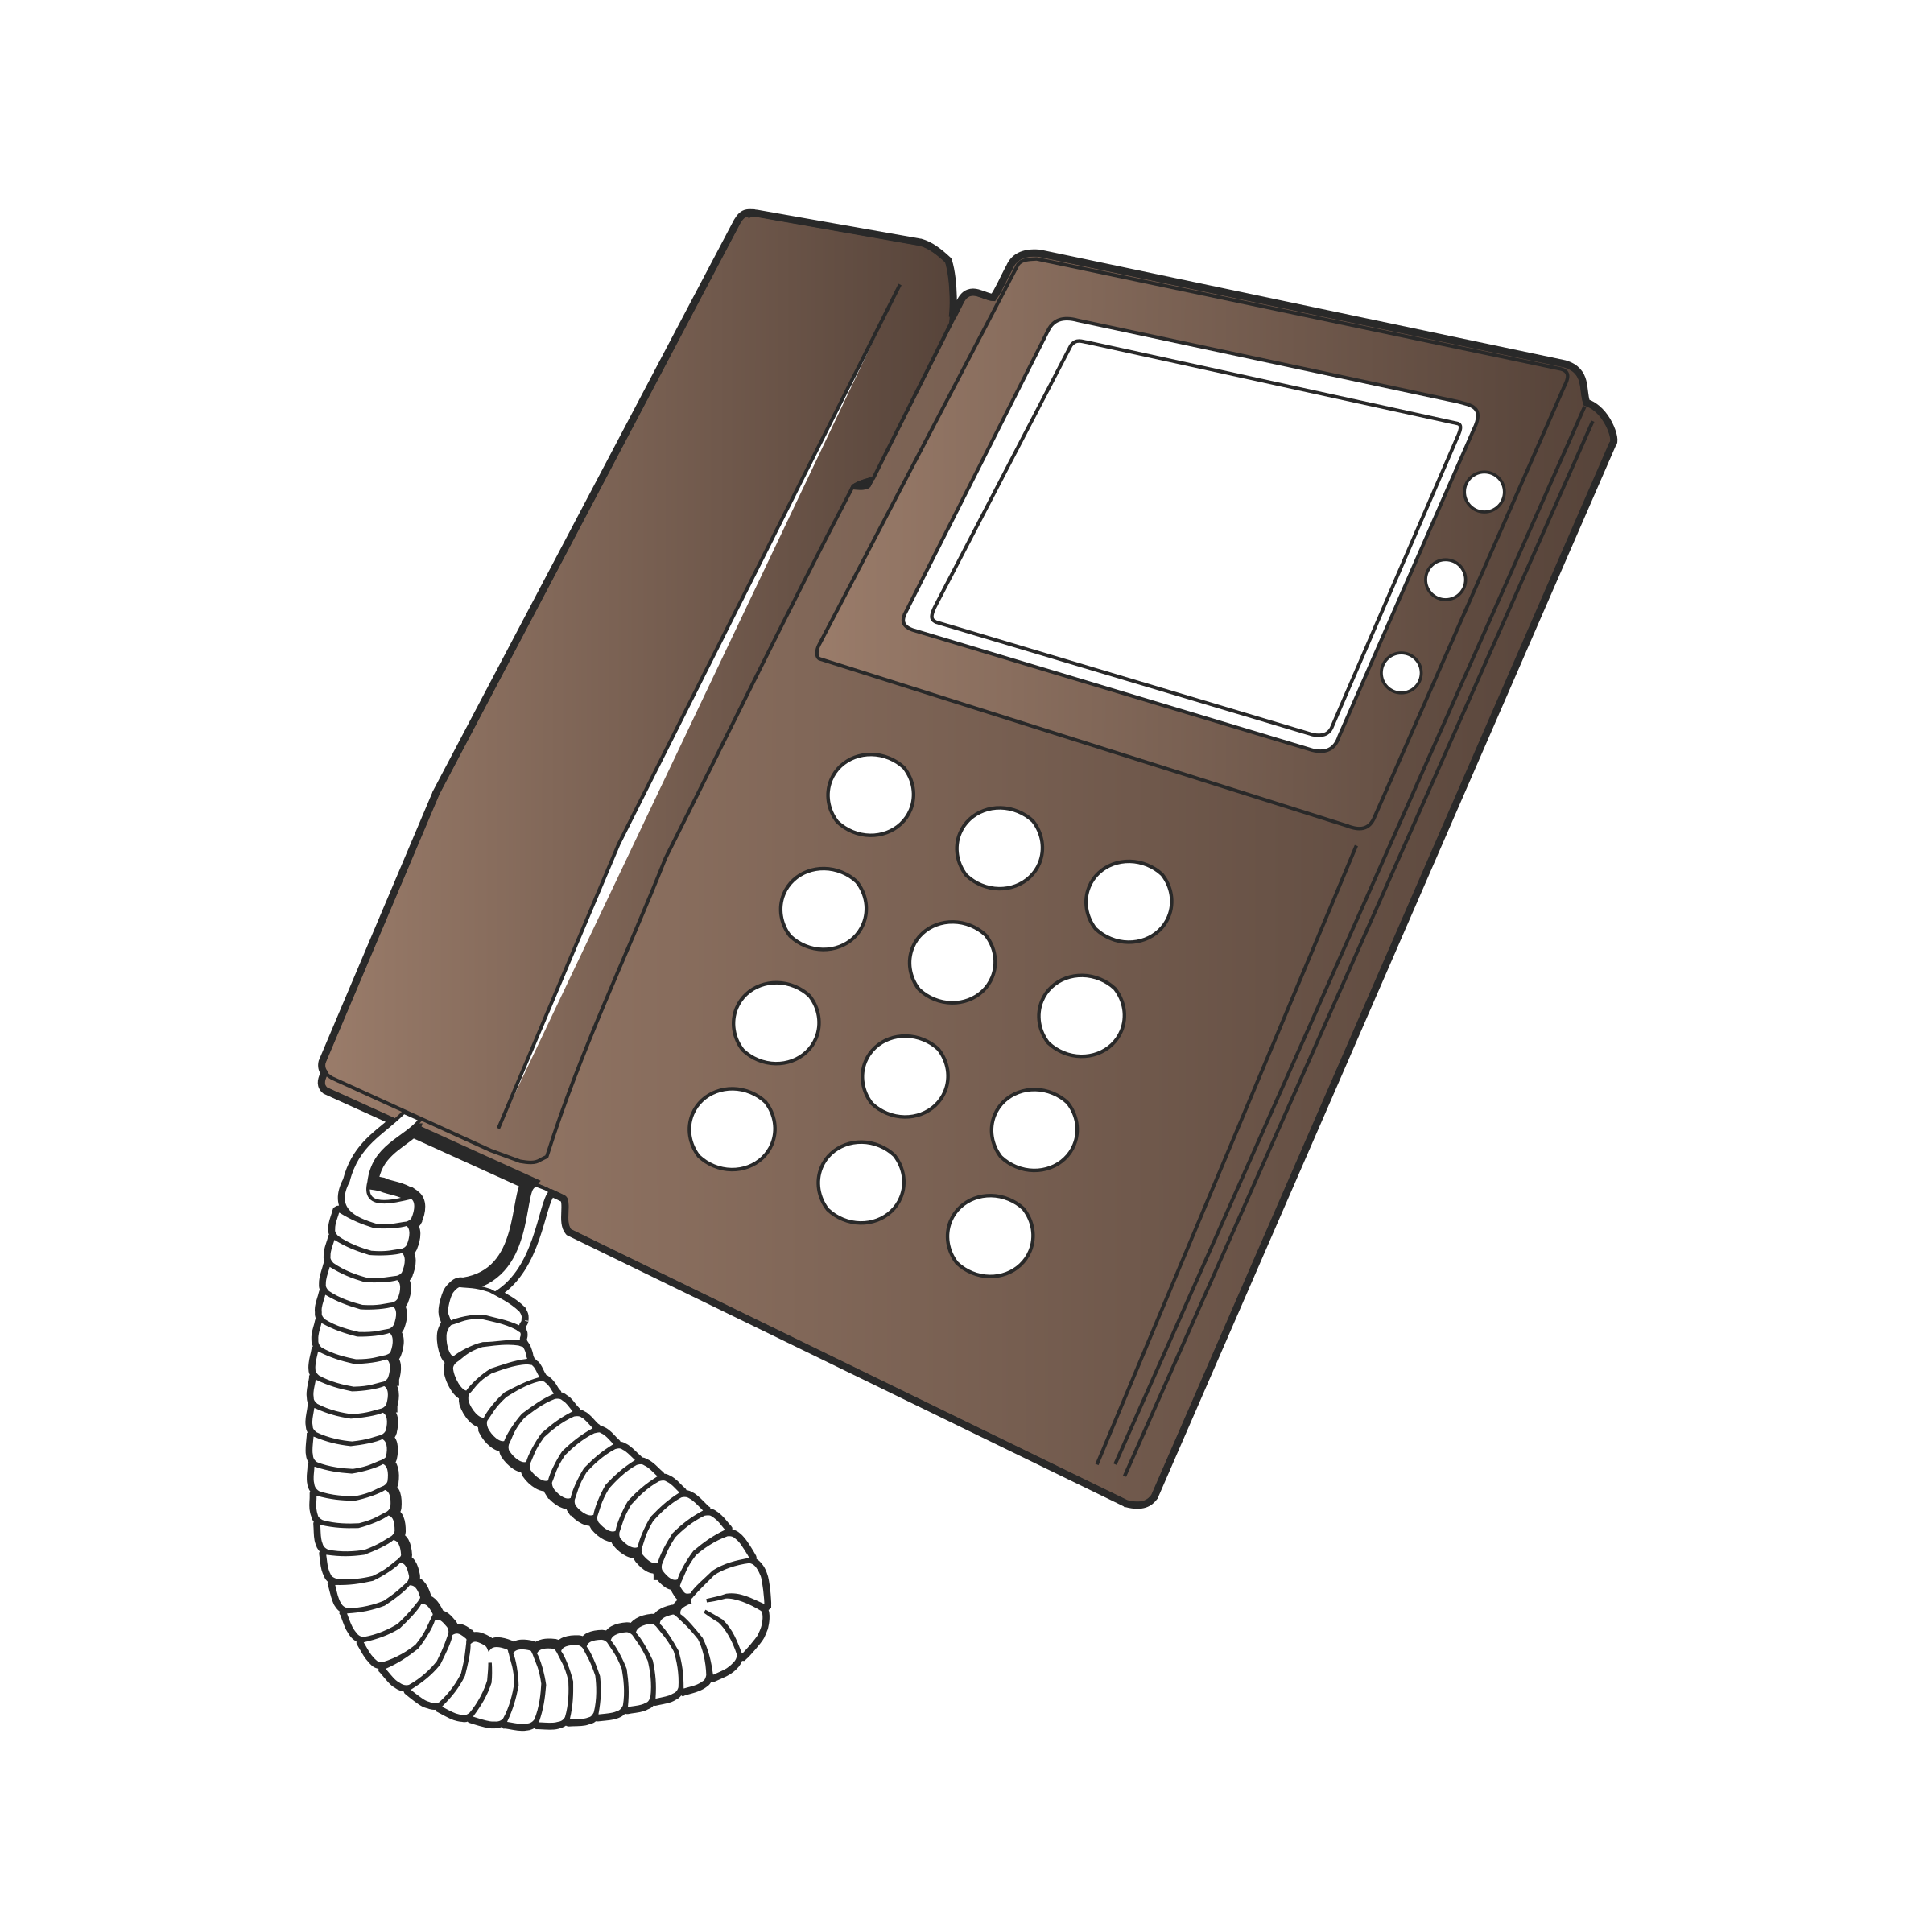 Desk big image png. Telephone clipart phone chat